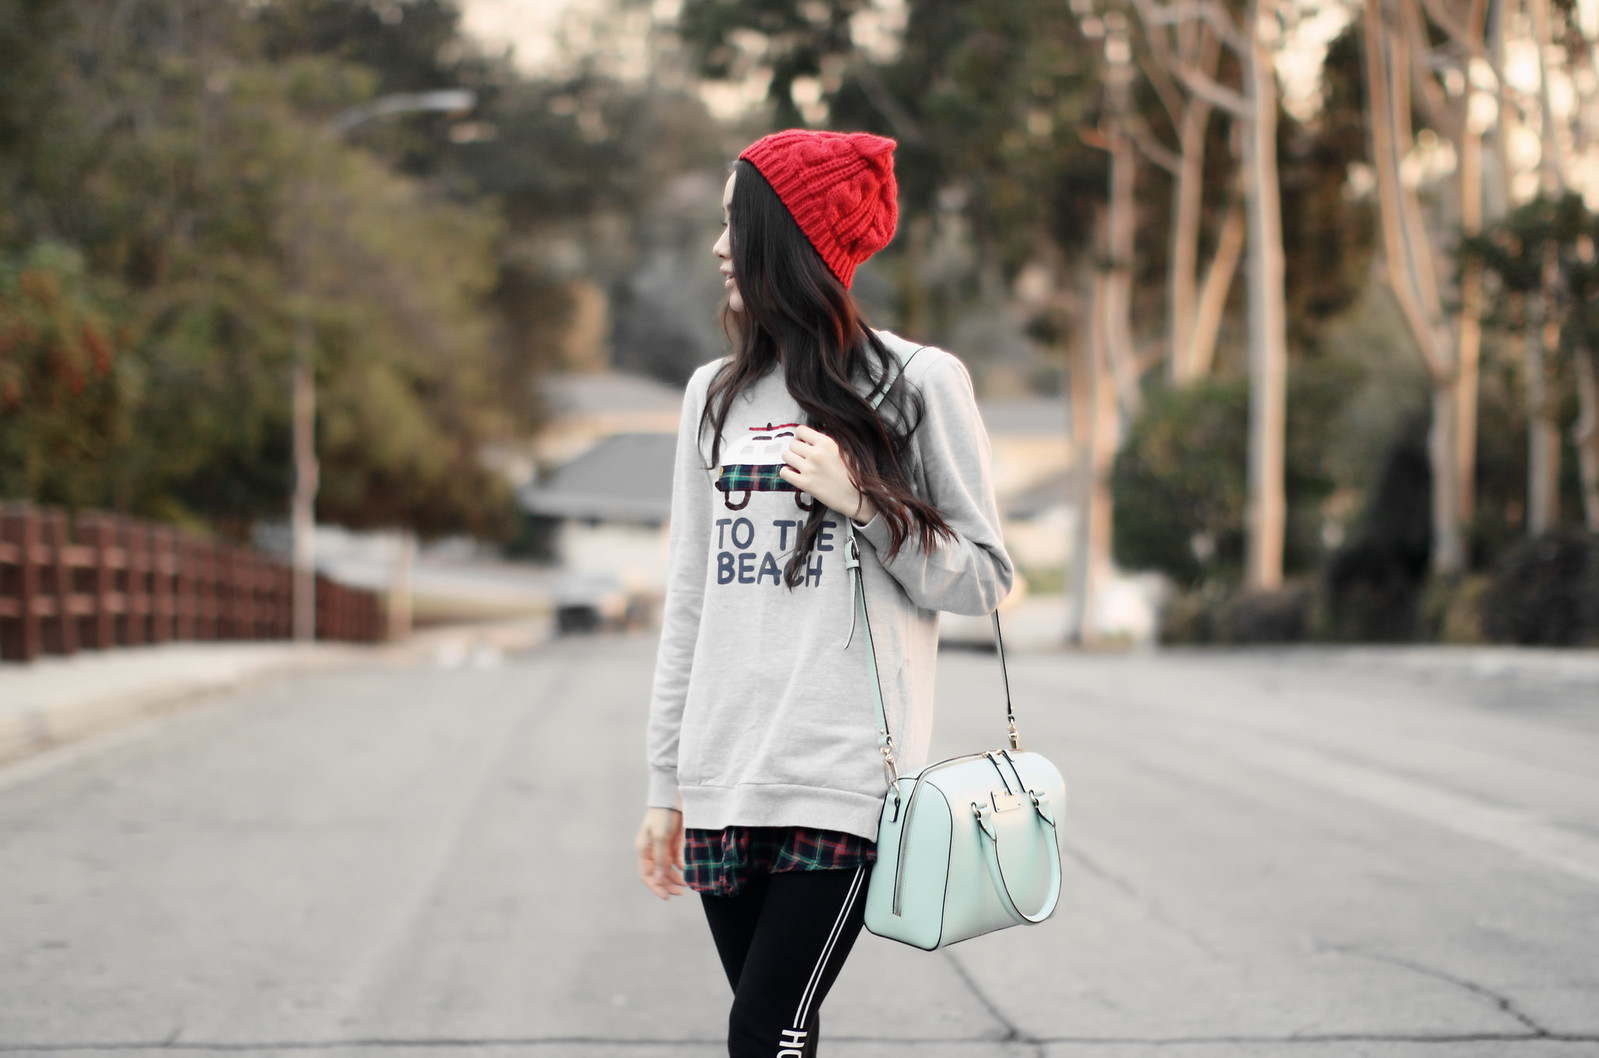 1279-ootd-sweaterdress-koreanfashion-asianfashion-korean-fall-yesstyle-sweaterweather-clothestoyouuu-blogger-elizabeeetht